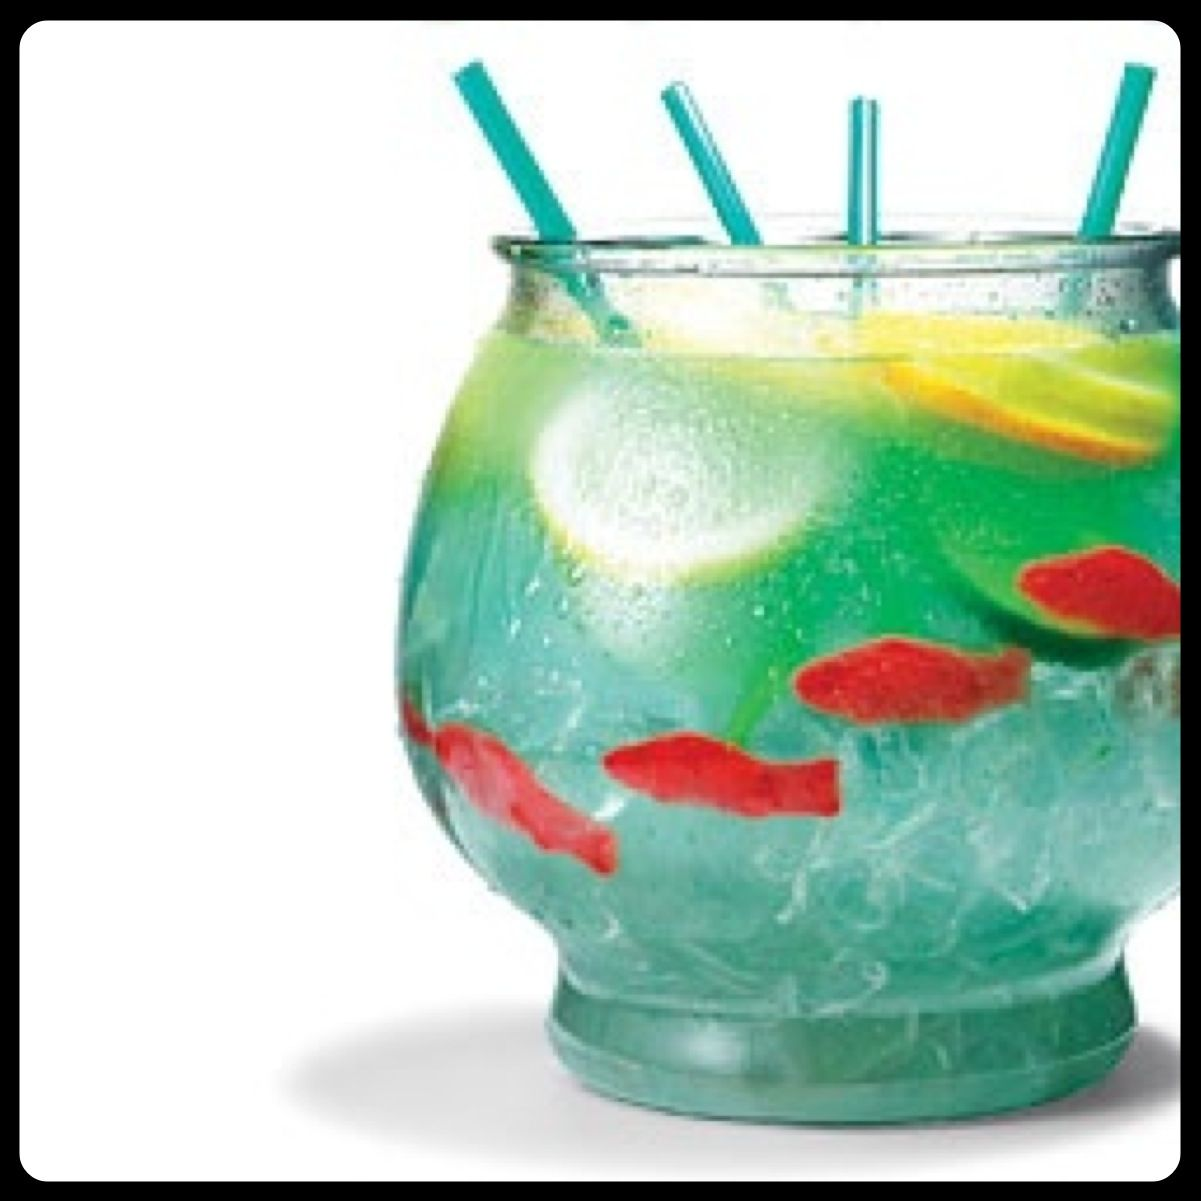 Blue Curacao Cocktail Alkoholfrei This Is A Terrible Idea Fishbowl Drink Drinks Fishbowl